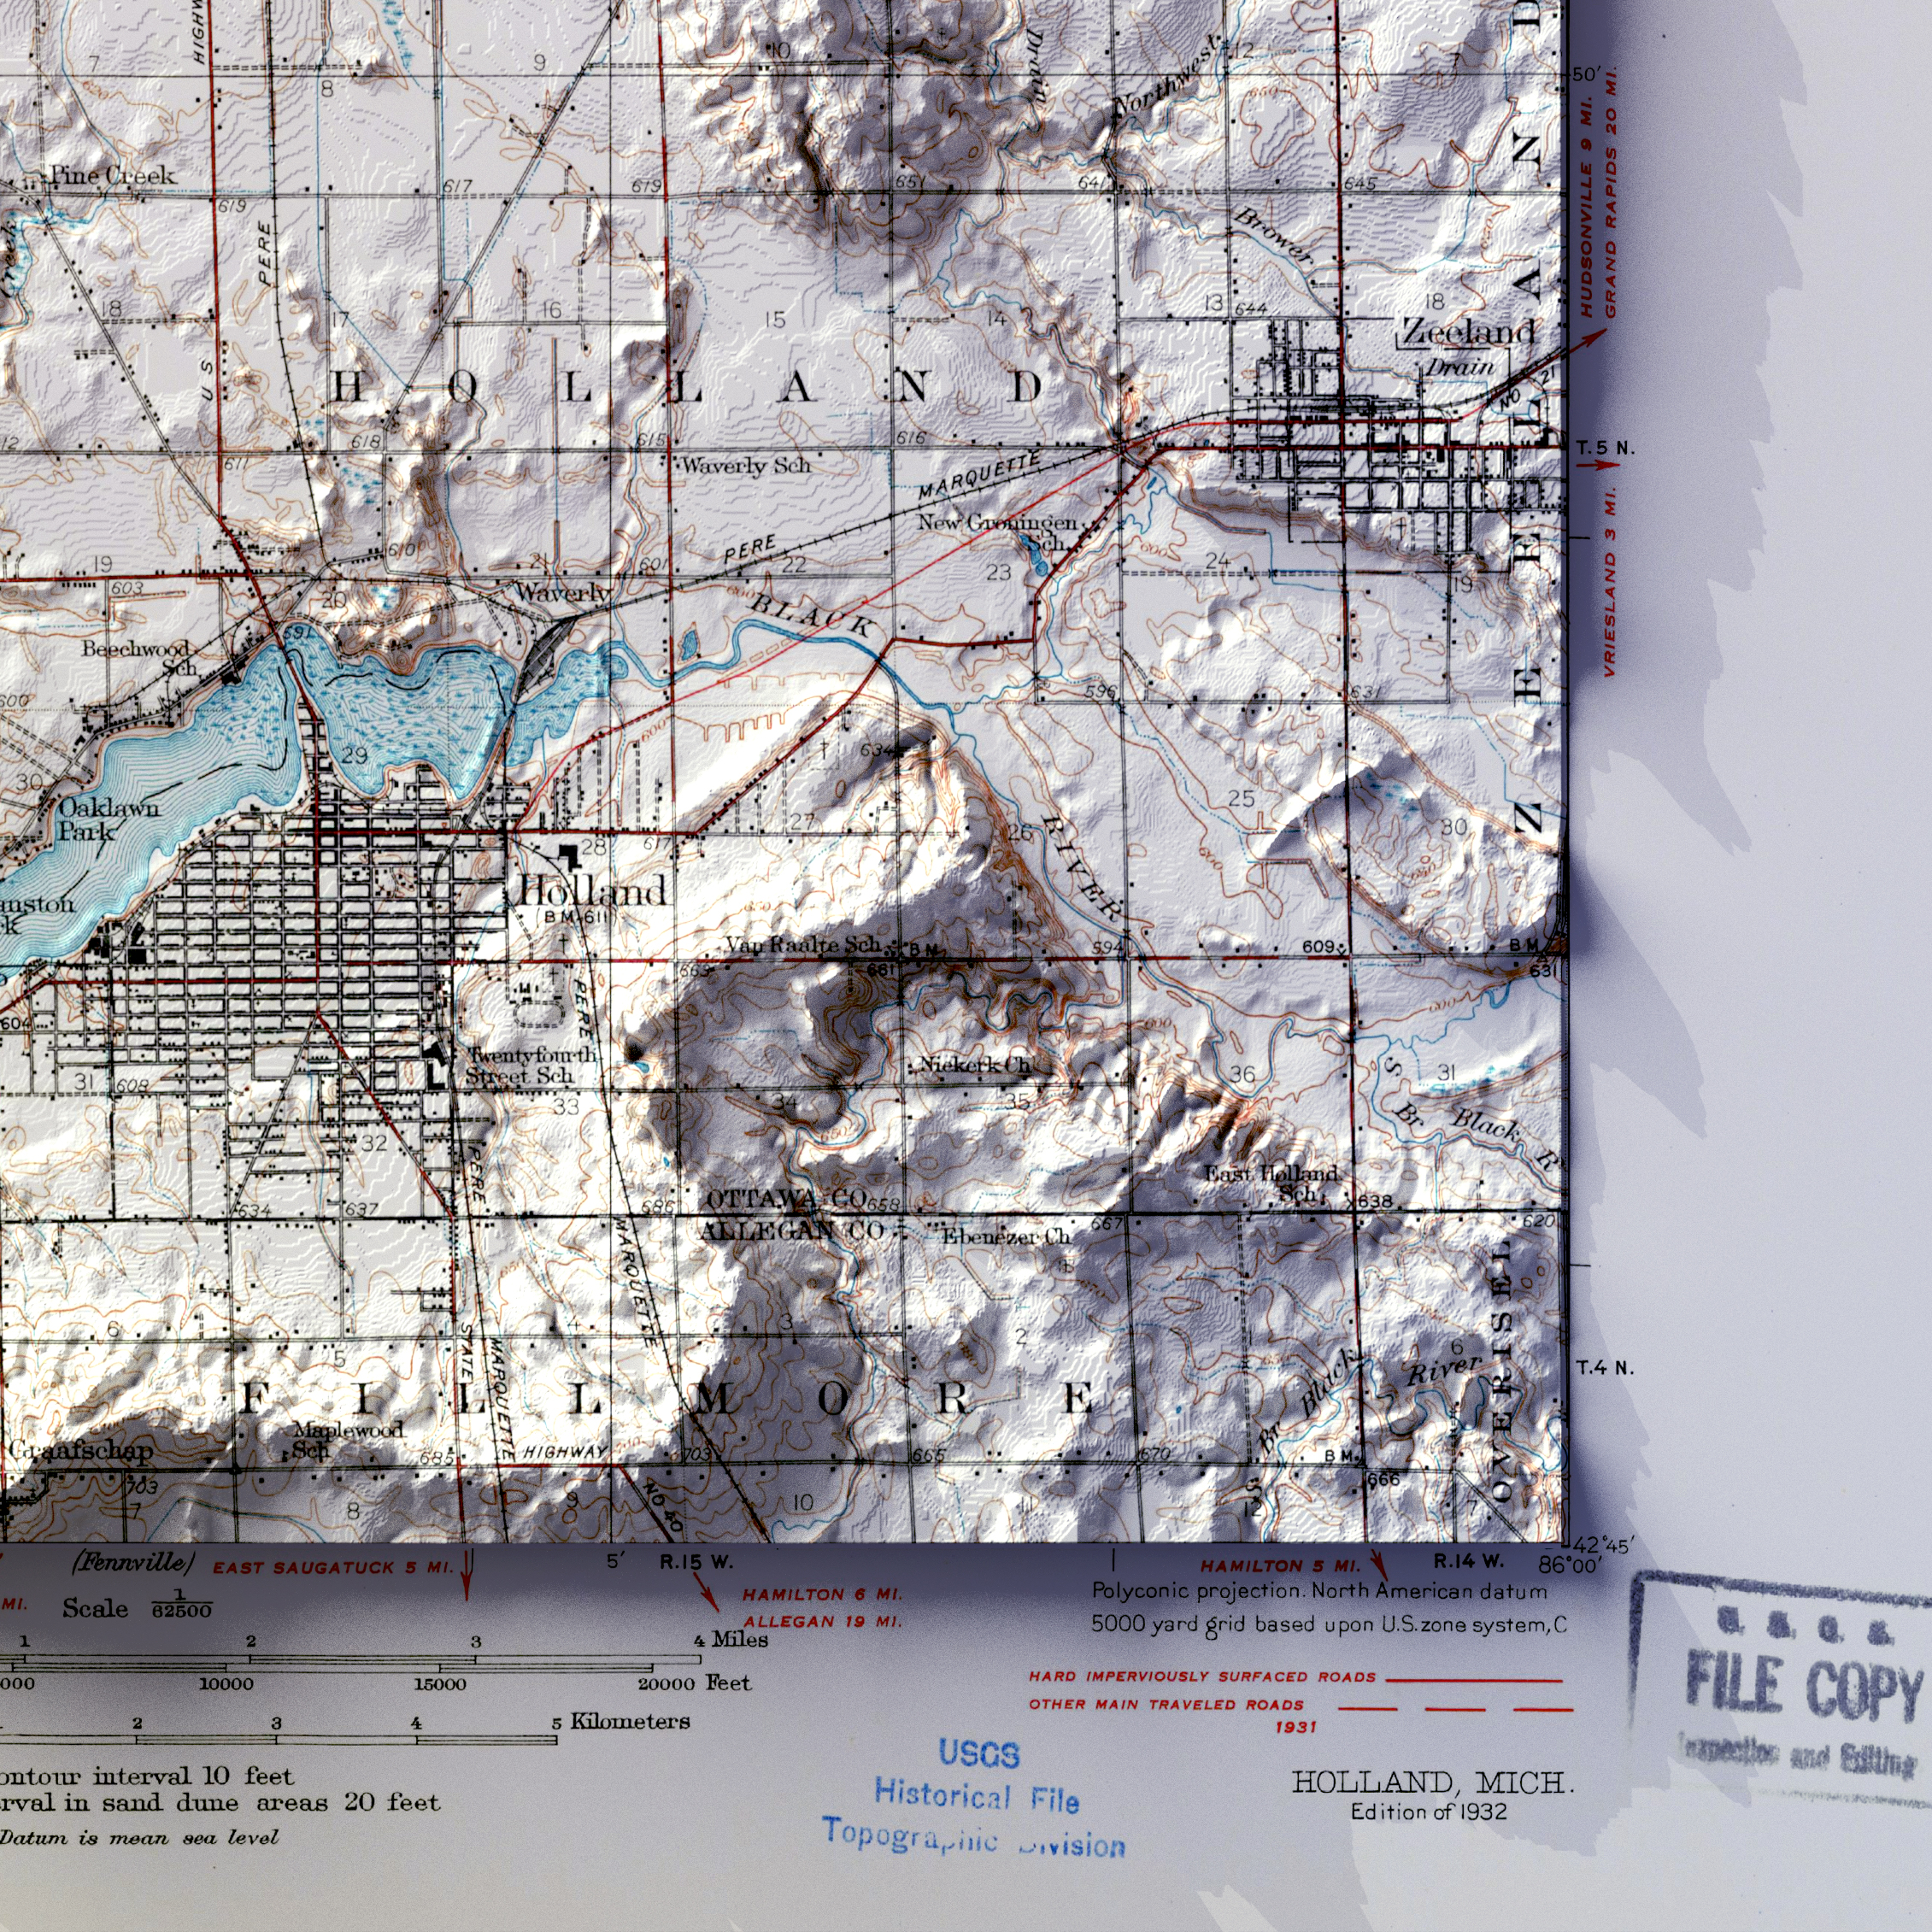 topo render w USGS historic map-3